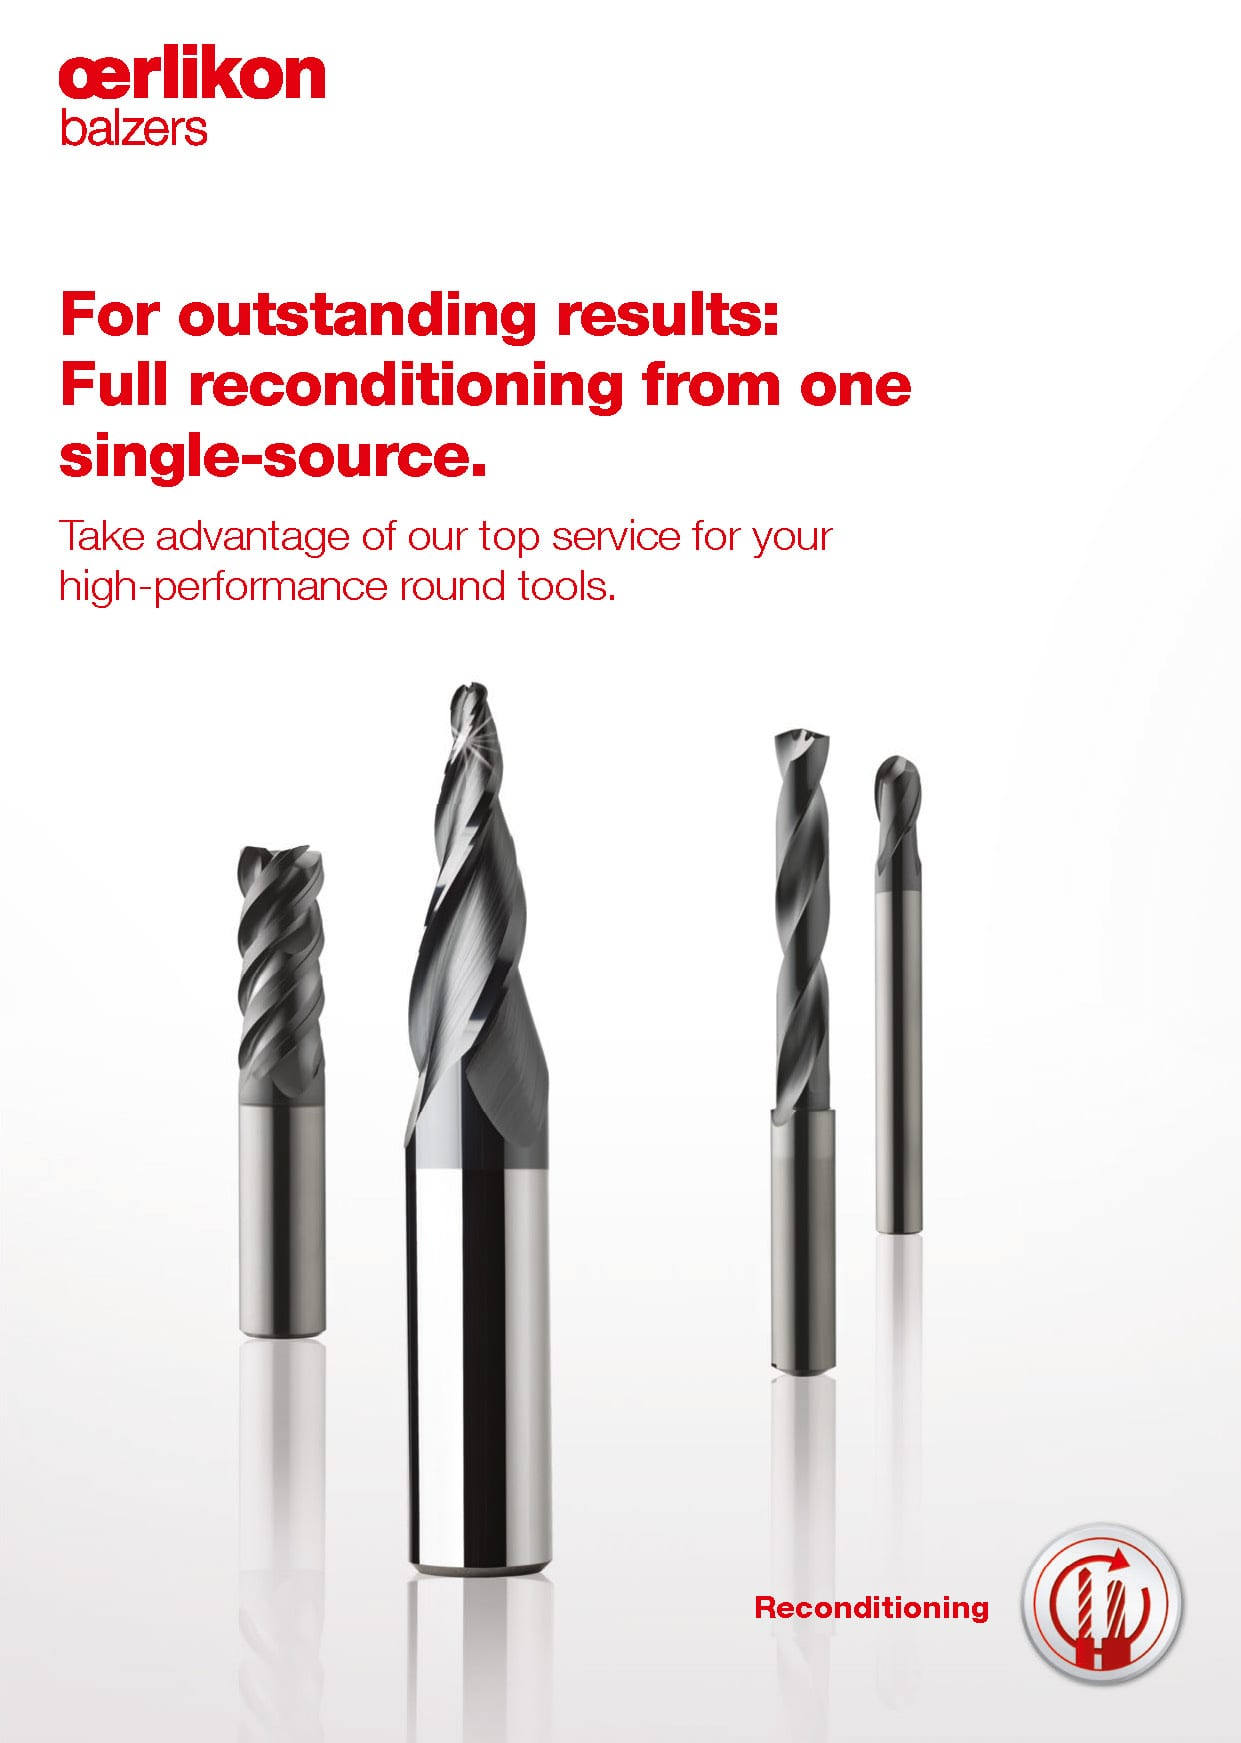 Reconditioning service - Take advantage of our top service for your high-performance round tools